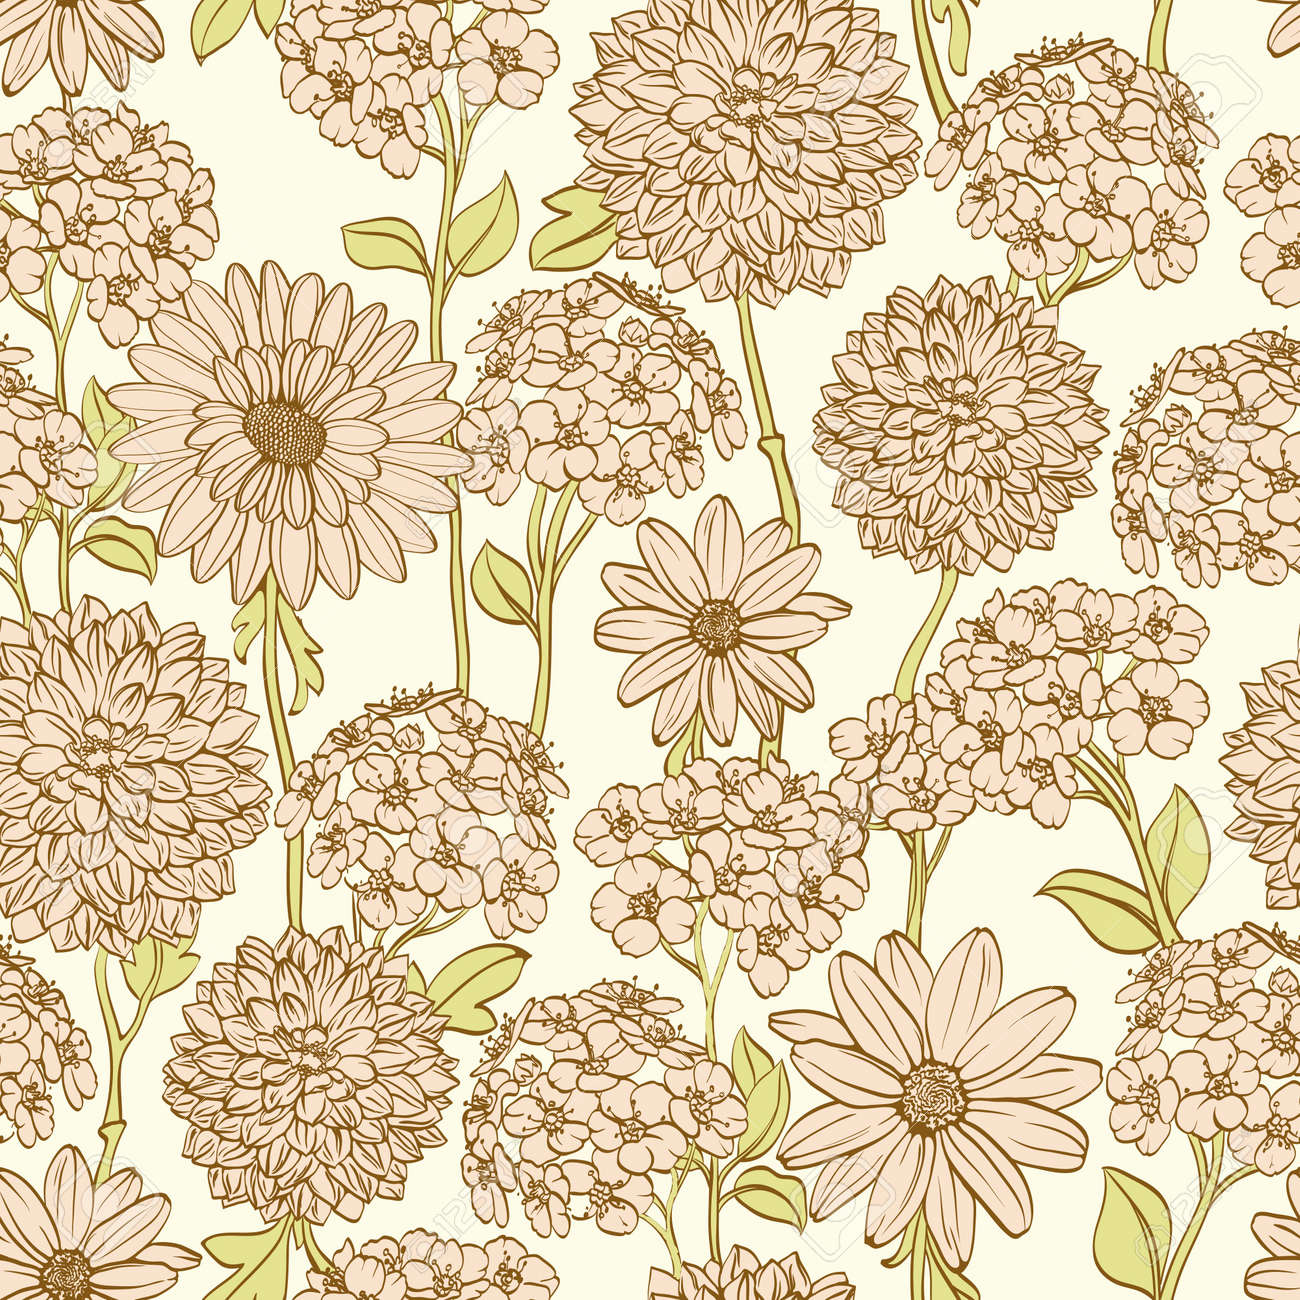 Hand drawn floral wallpaper with pink flowers. Could be used as seamless wallpaper, textile, wrapping paper or background Stock Vector - 11073731